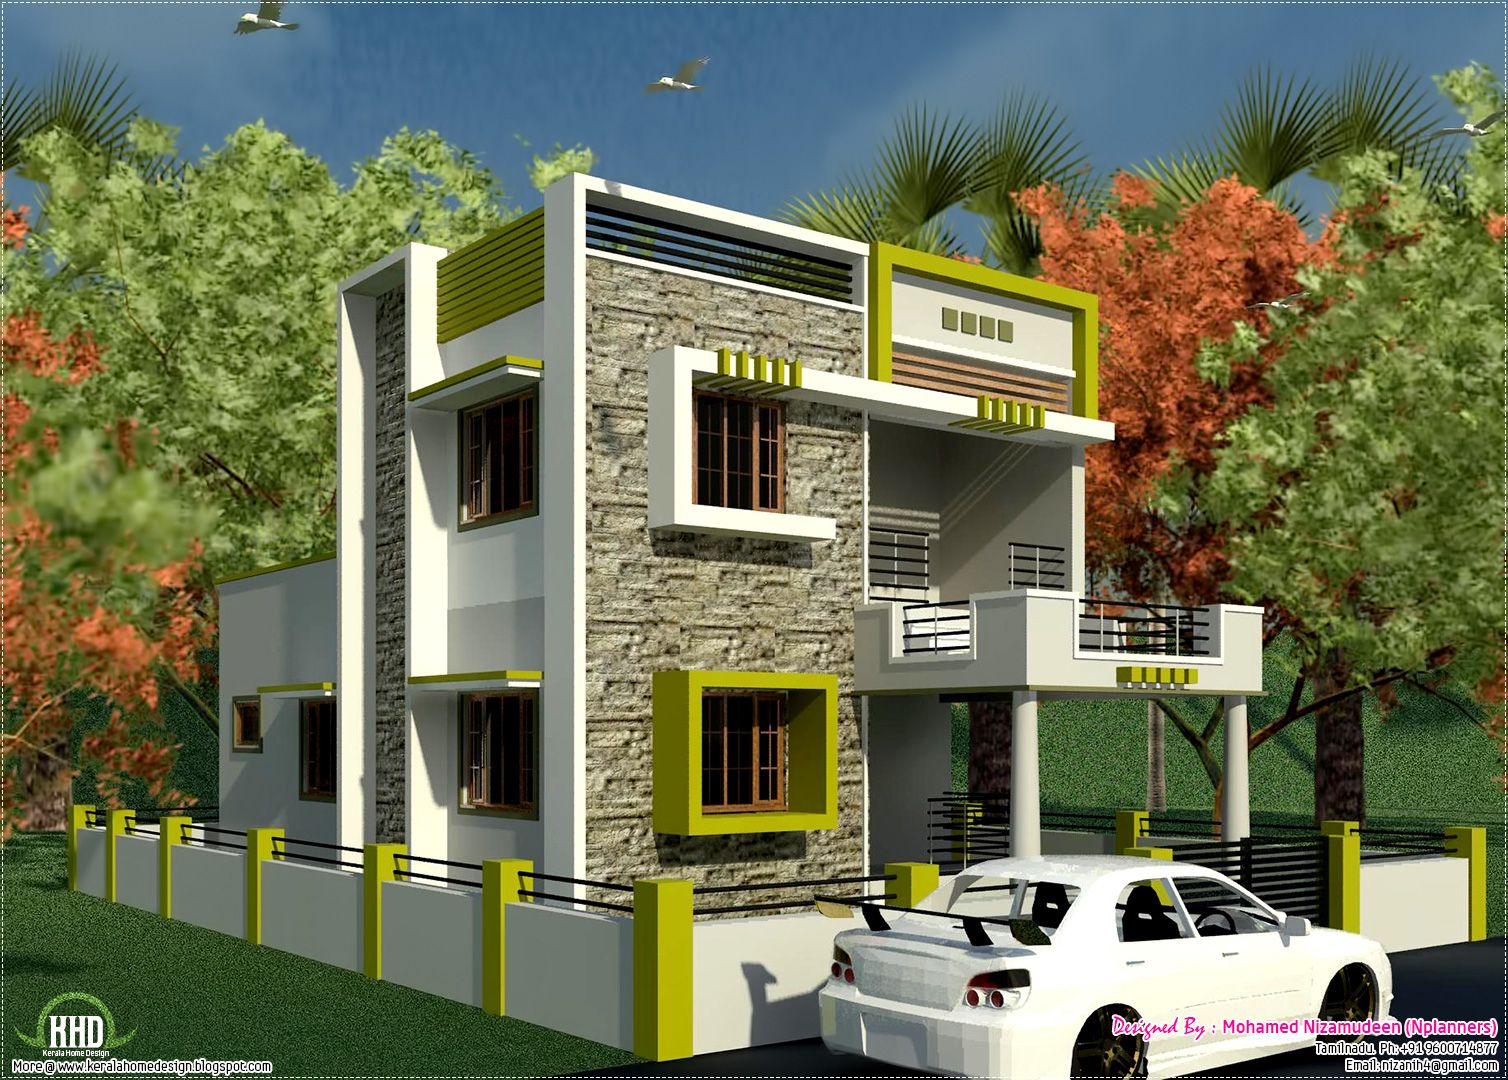 Small house with car park design tobfav com ideas for Indian house exterior design